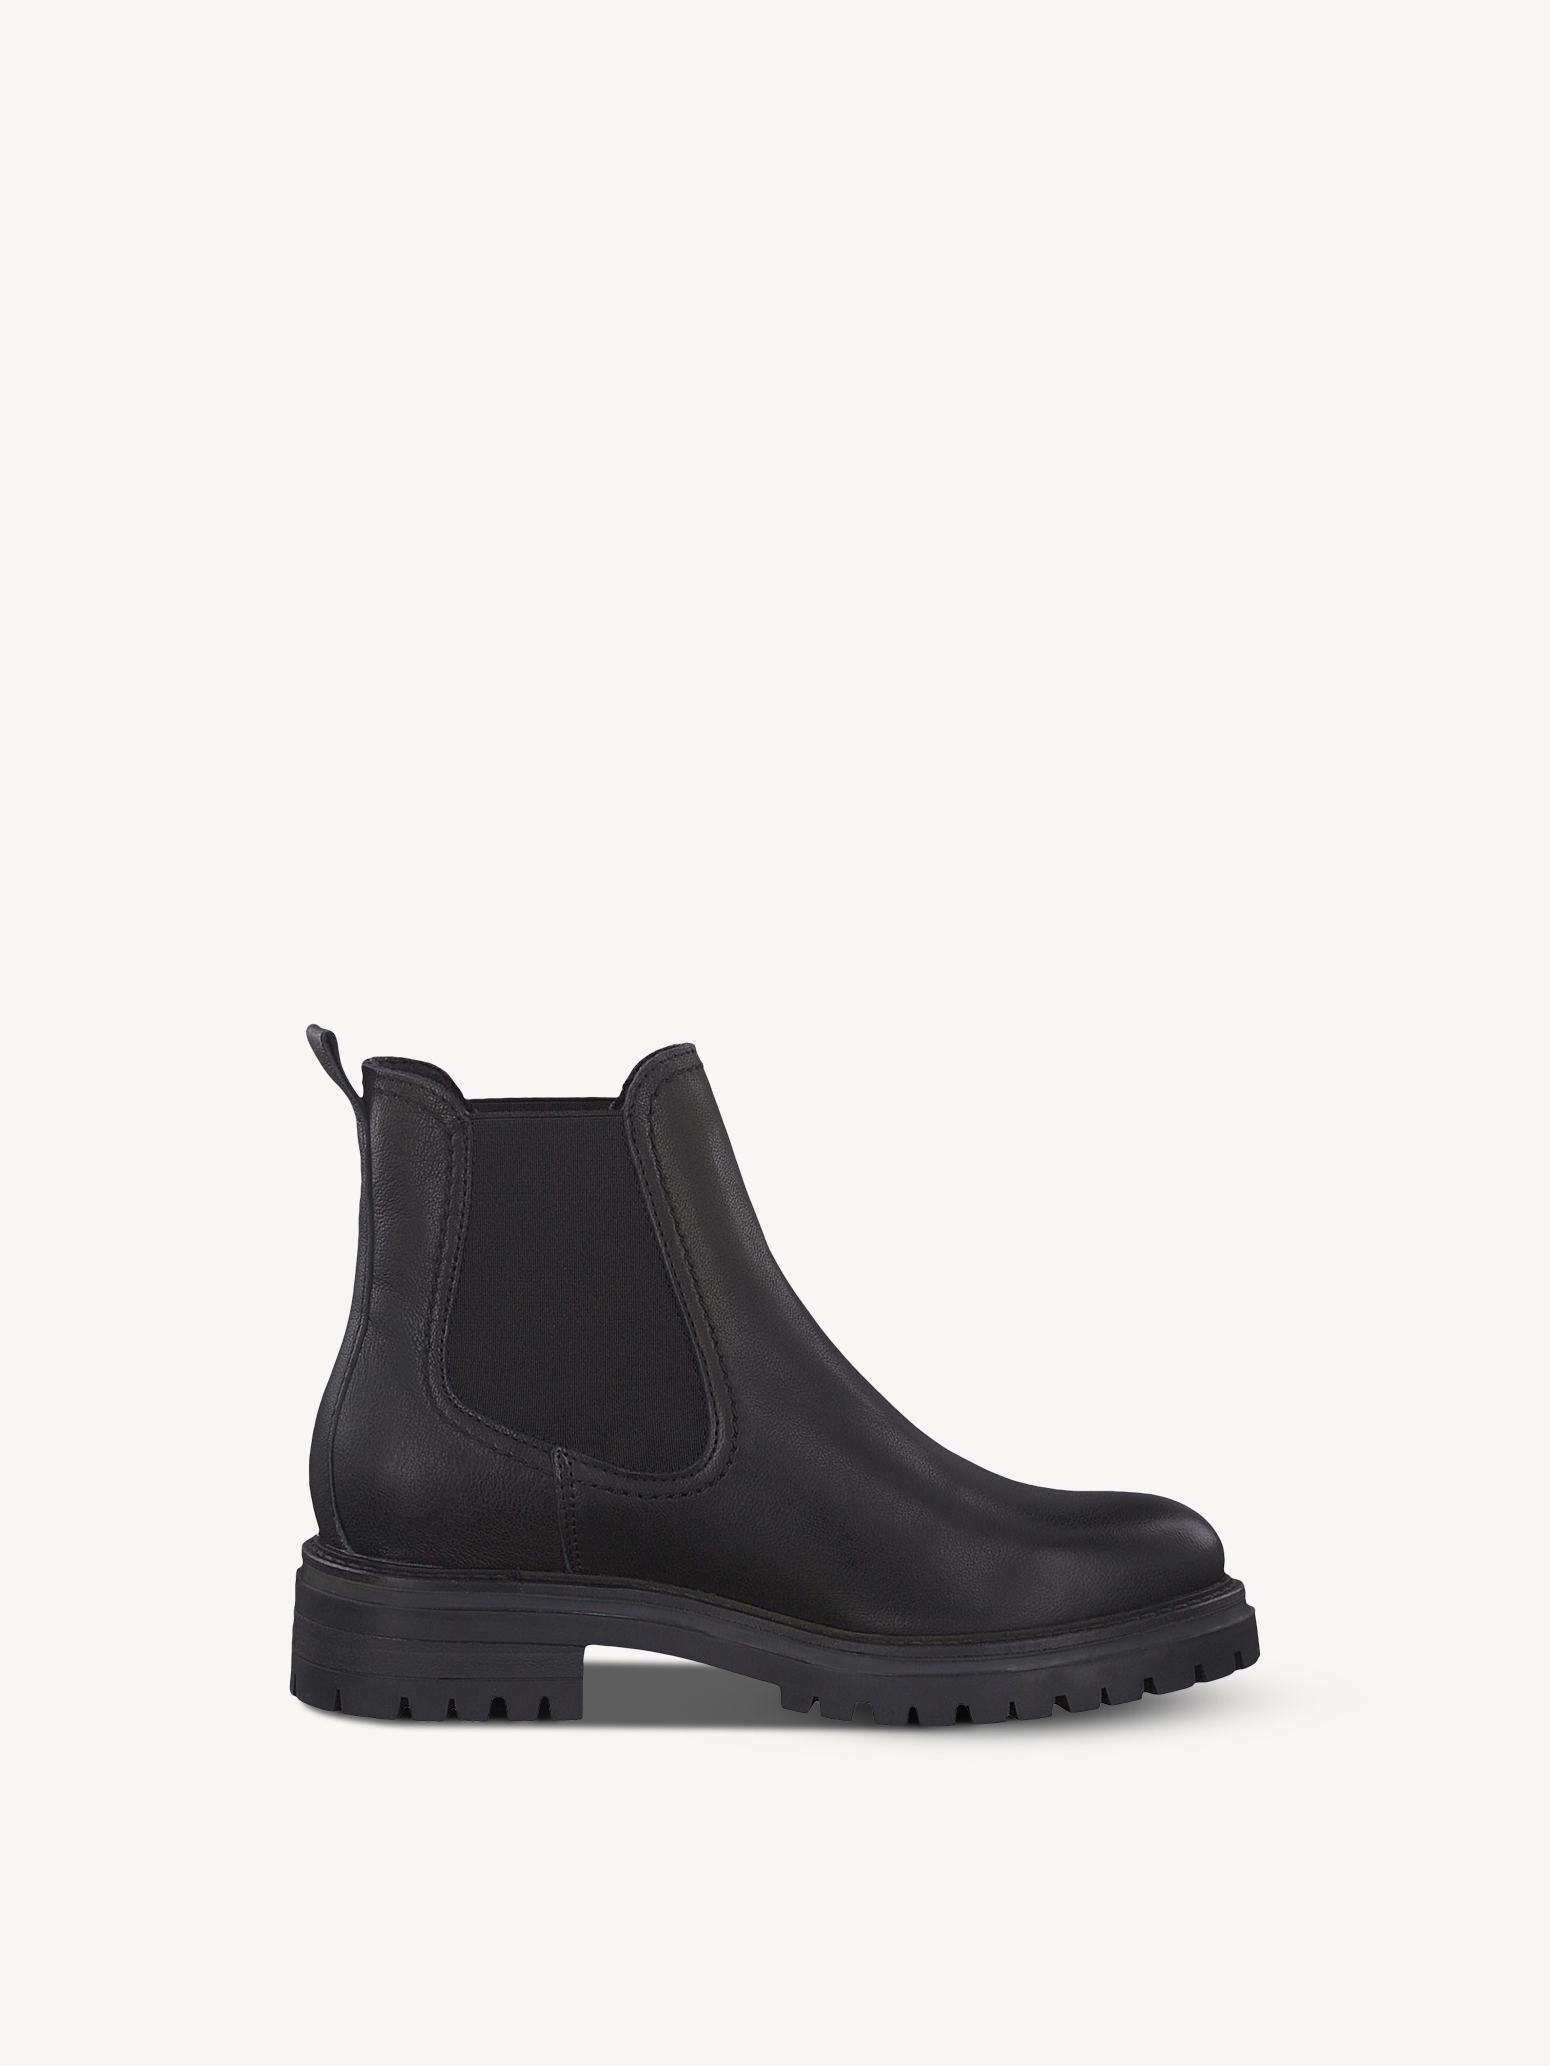 Leather Chelsea boot - black, BLACK LEATHER, hi-res